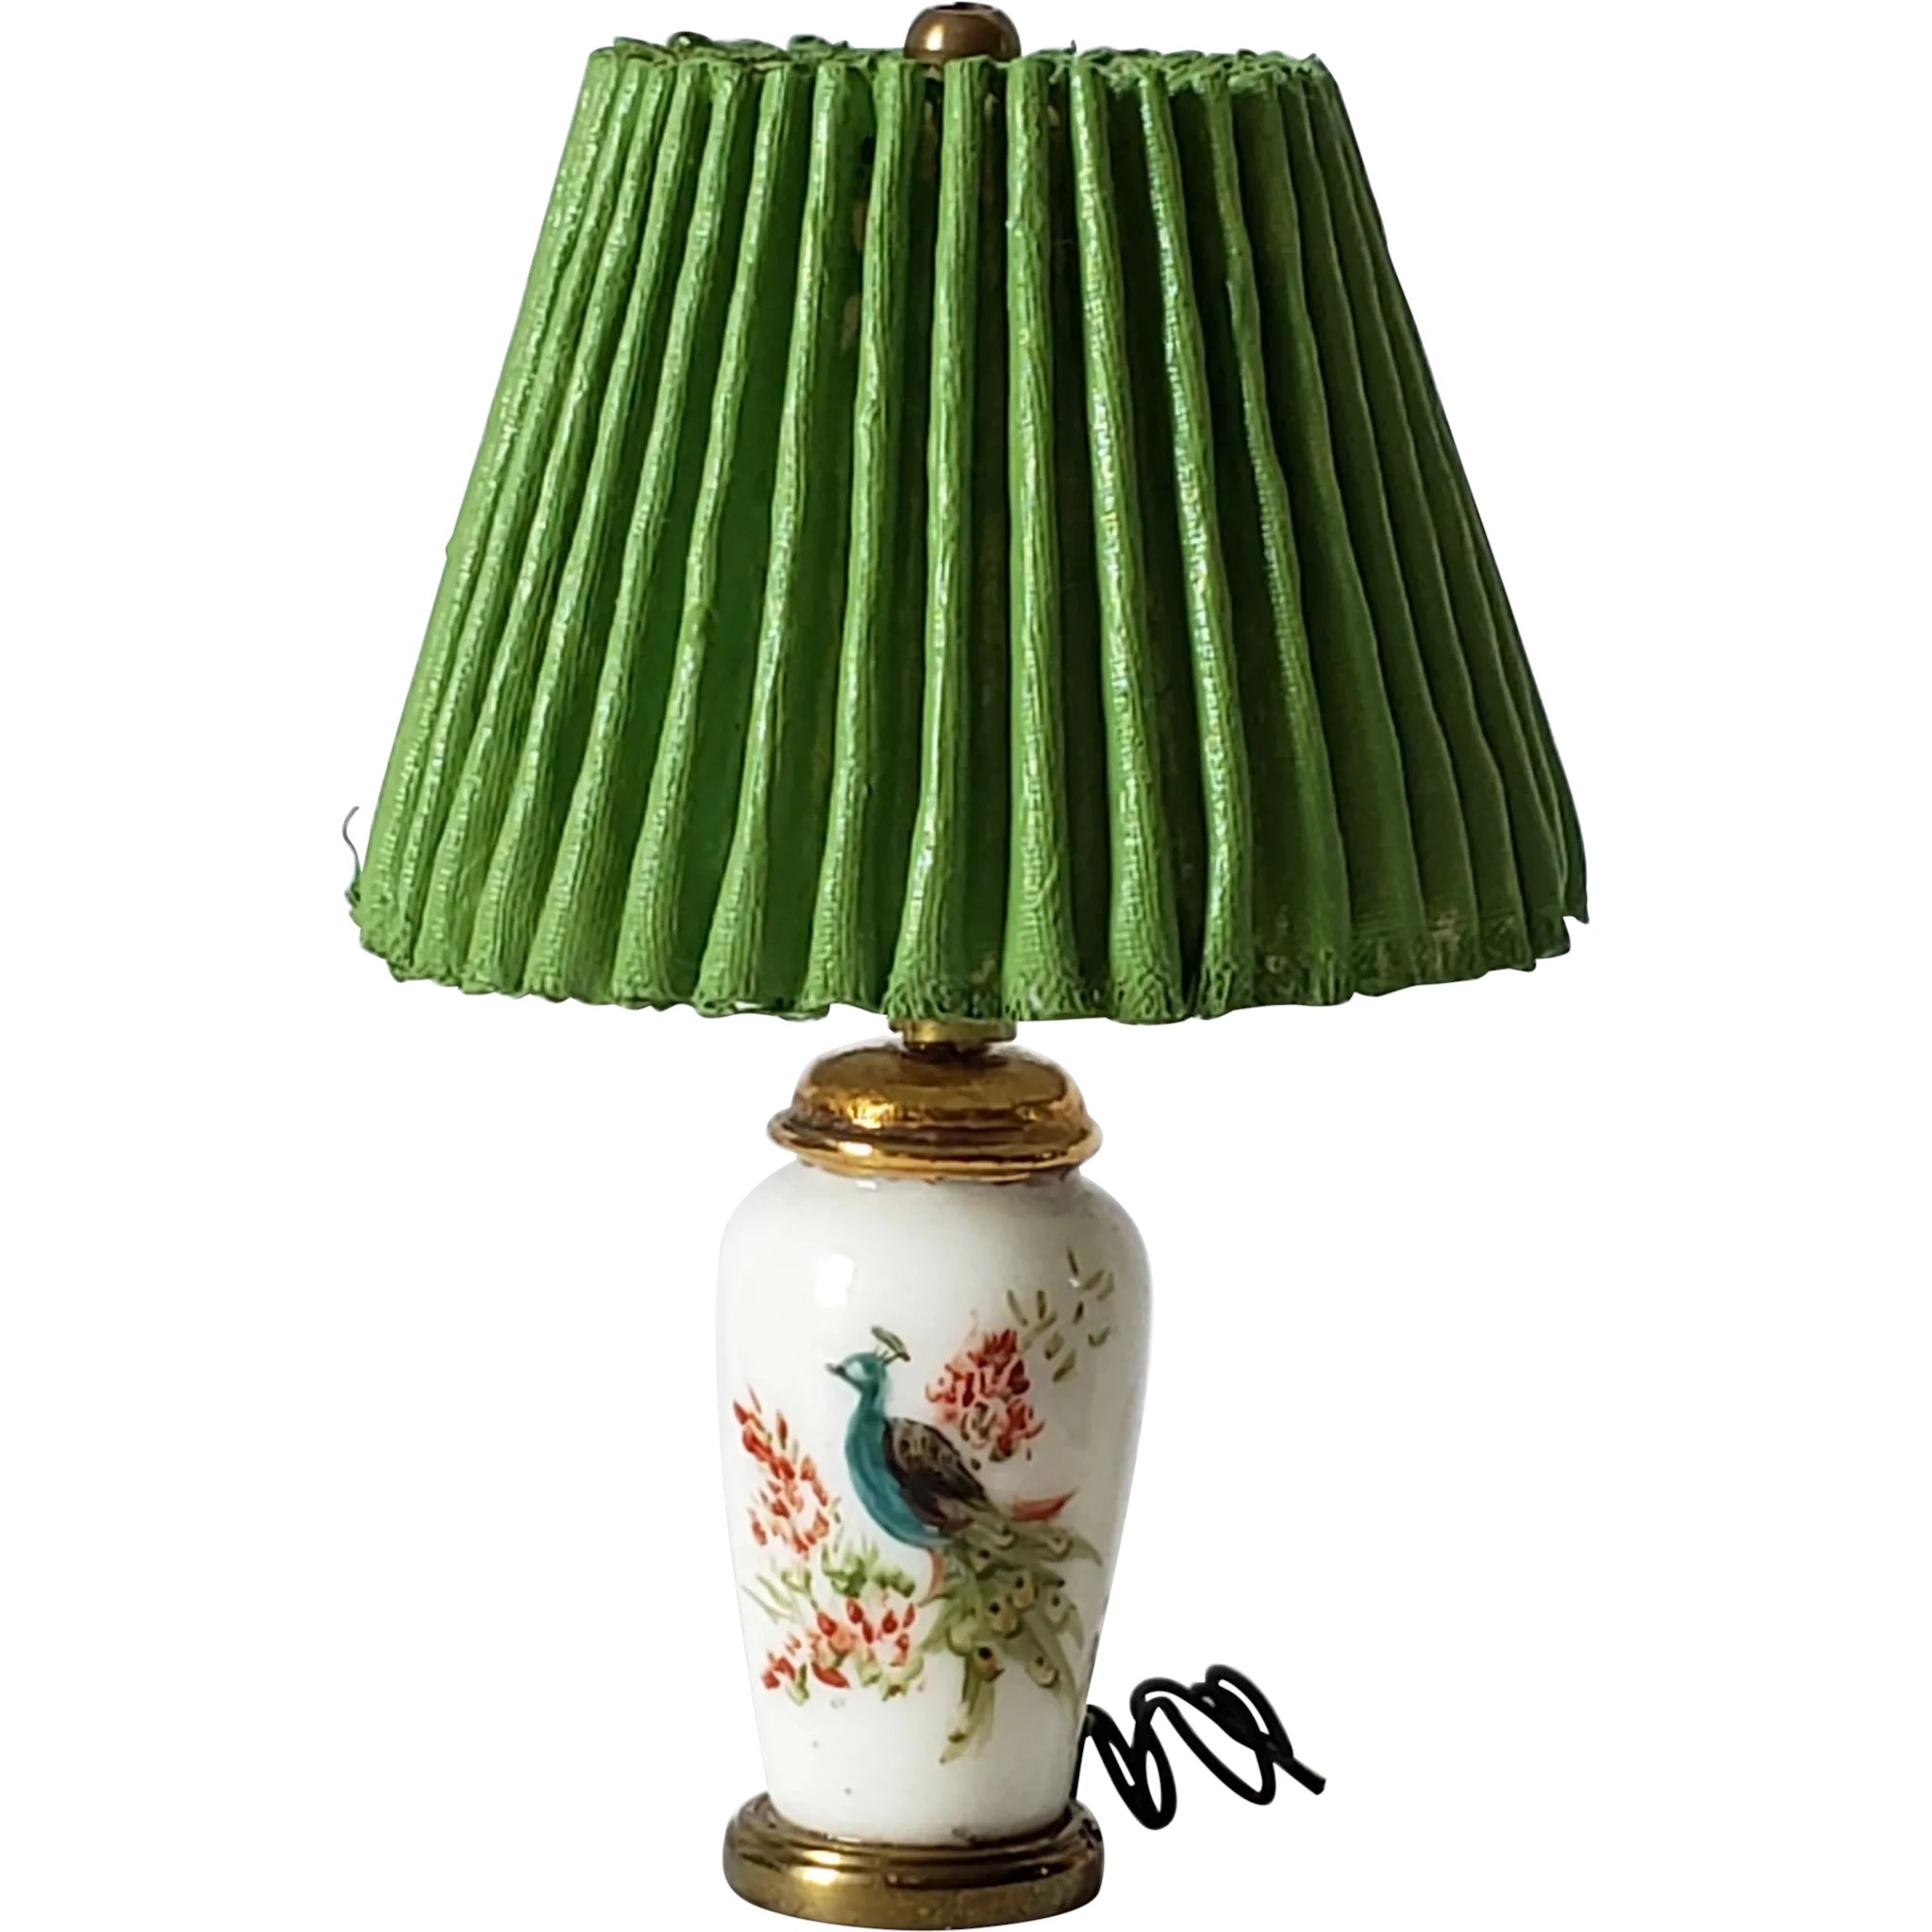 Vintage Dollhouse Hand Painted Porcelain Lamp, Electrified